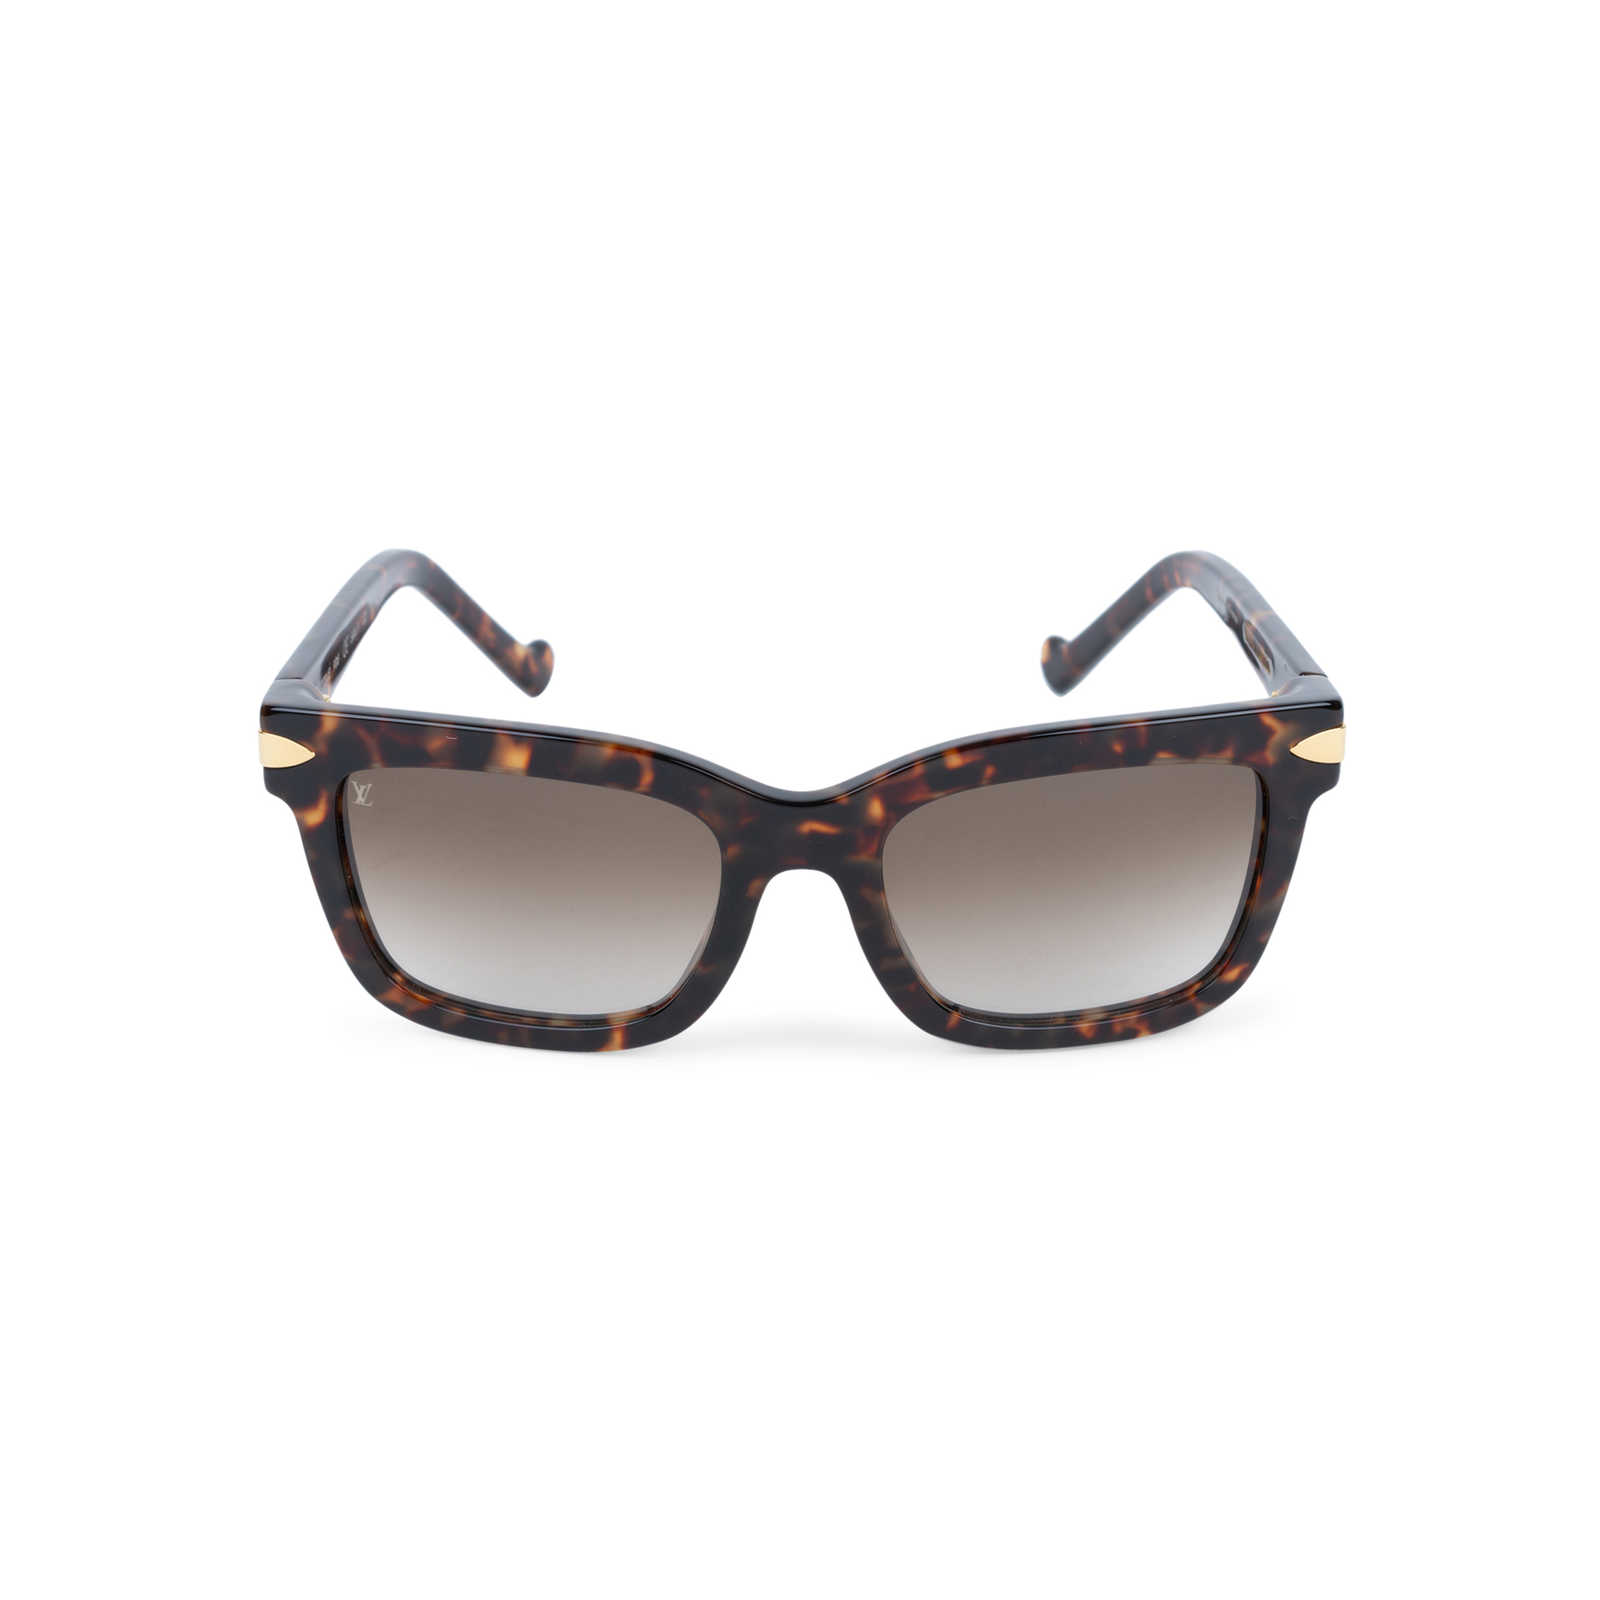 7c73071627 ... Authentic Second Hand Louis Vuitton Tortoise Shell Sunglasses  (PSS-559-00006) ...